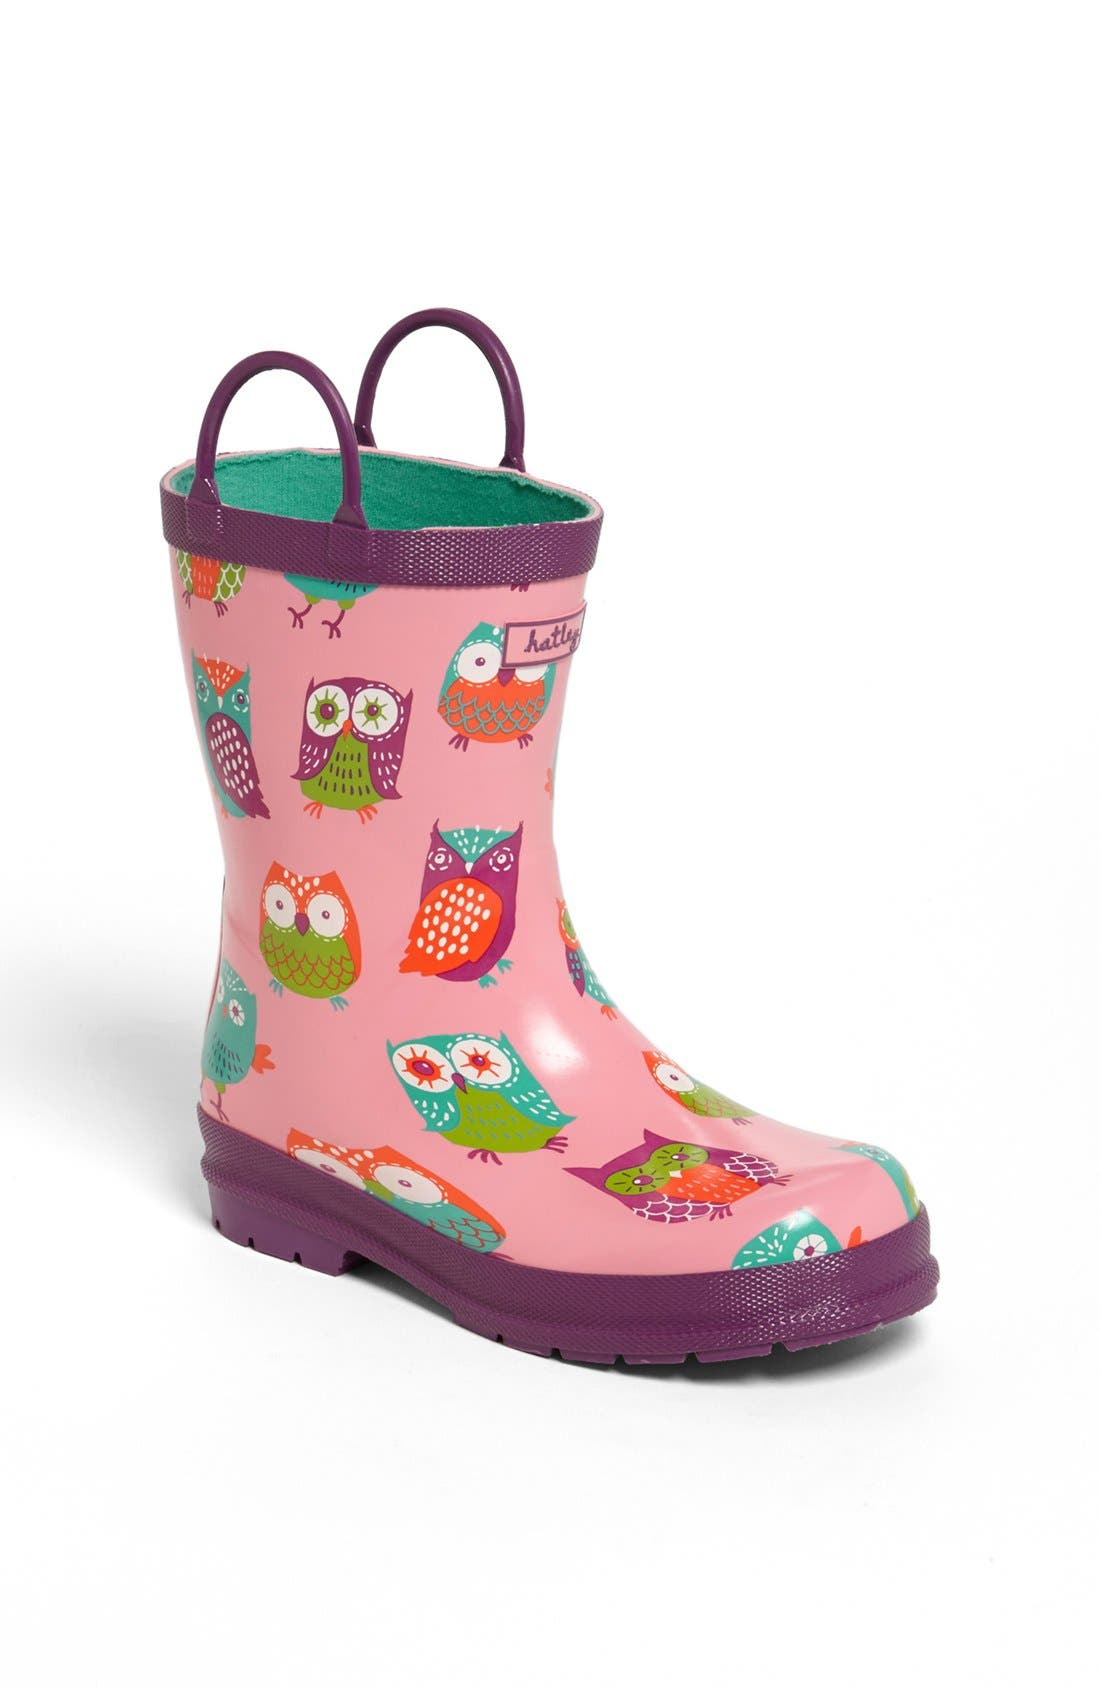 Main Image - Hatley 'Party Owls' Rain Boot (Walker, Toddler & Little Kid)